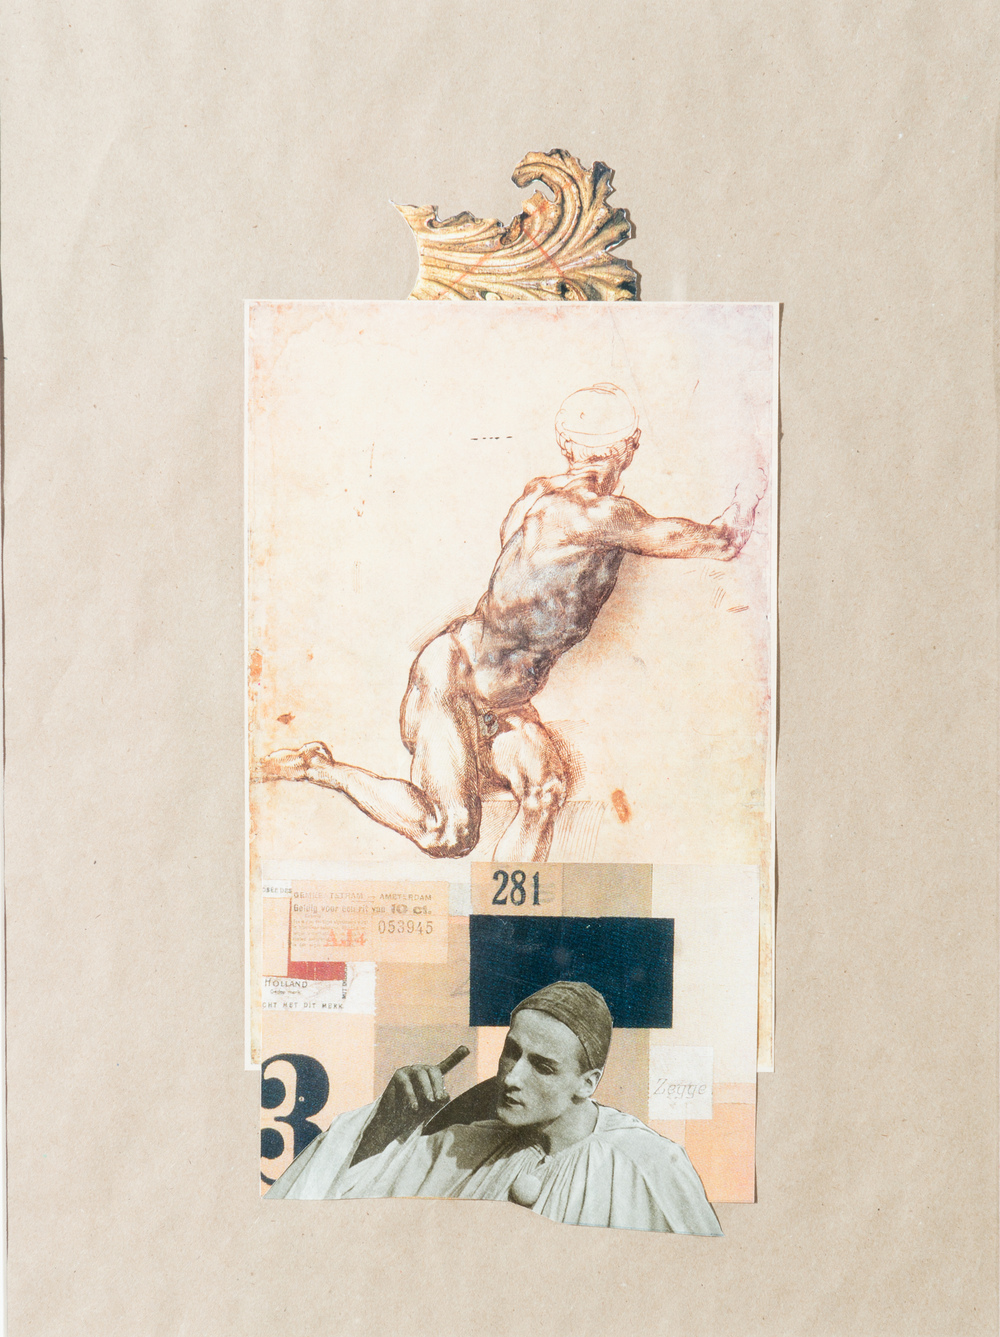 TL-047, Talk to me (four letters about love), collage, 2015, 19x23.jpg